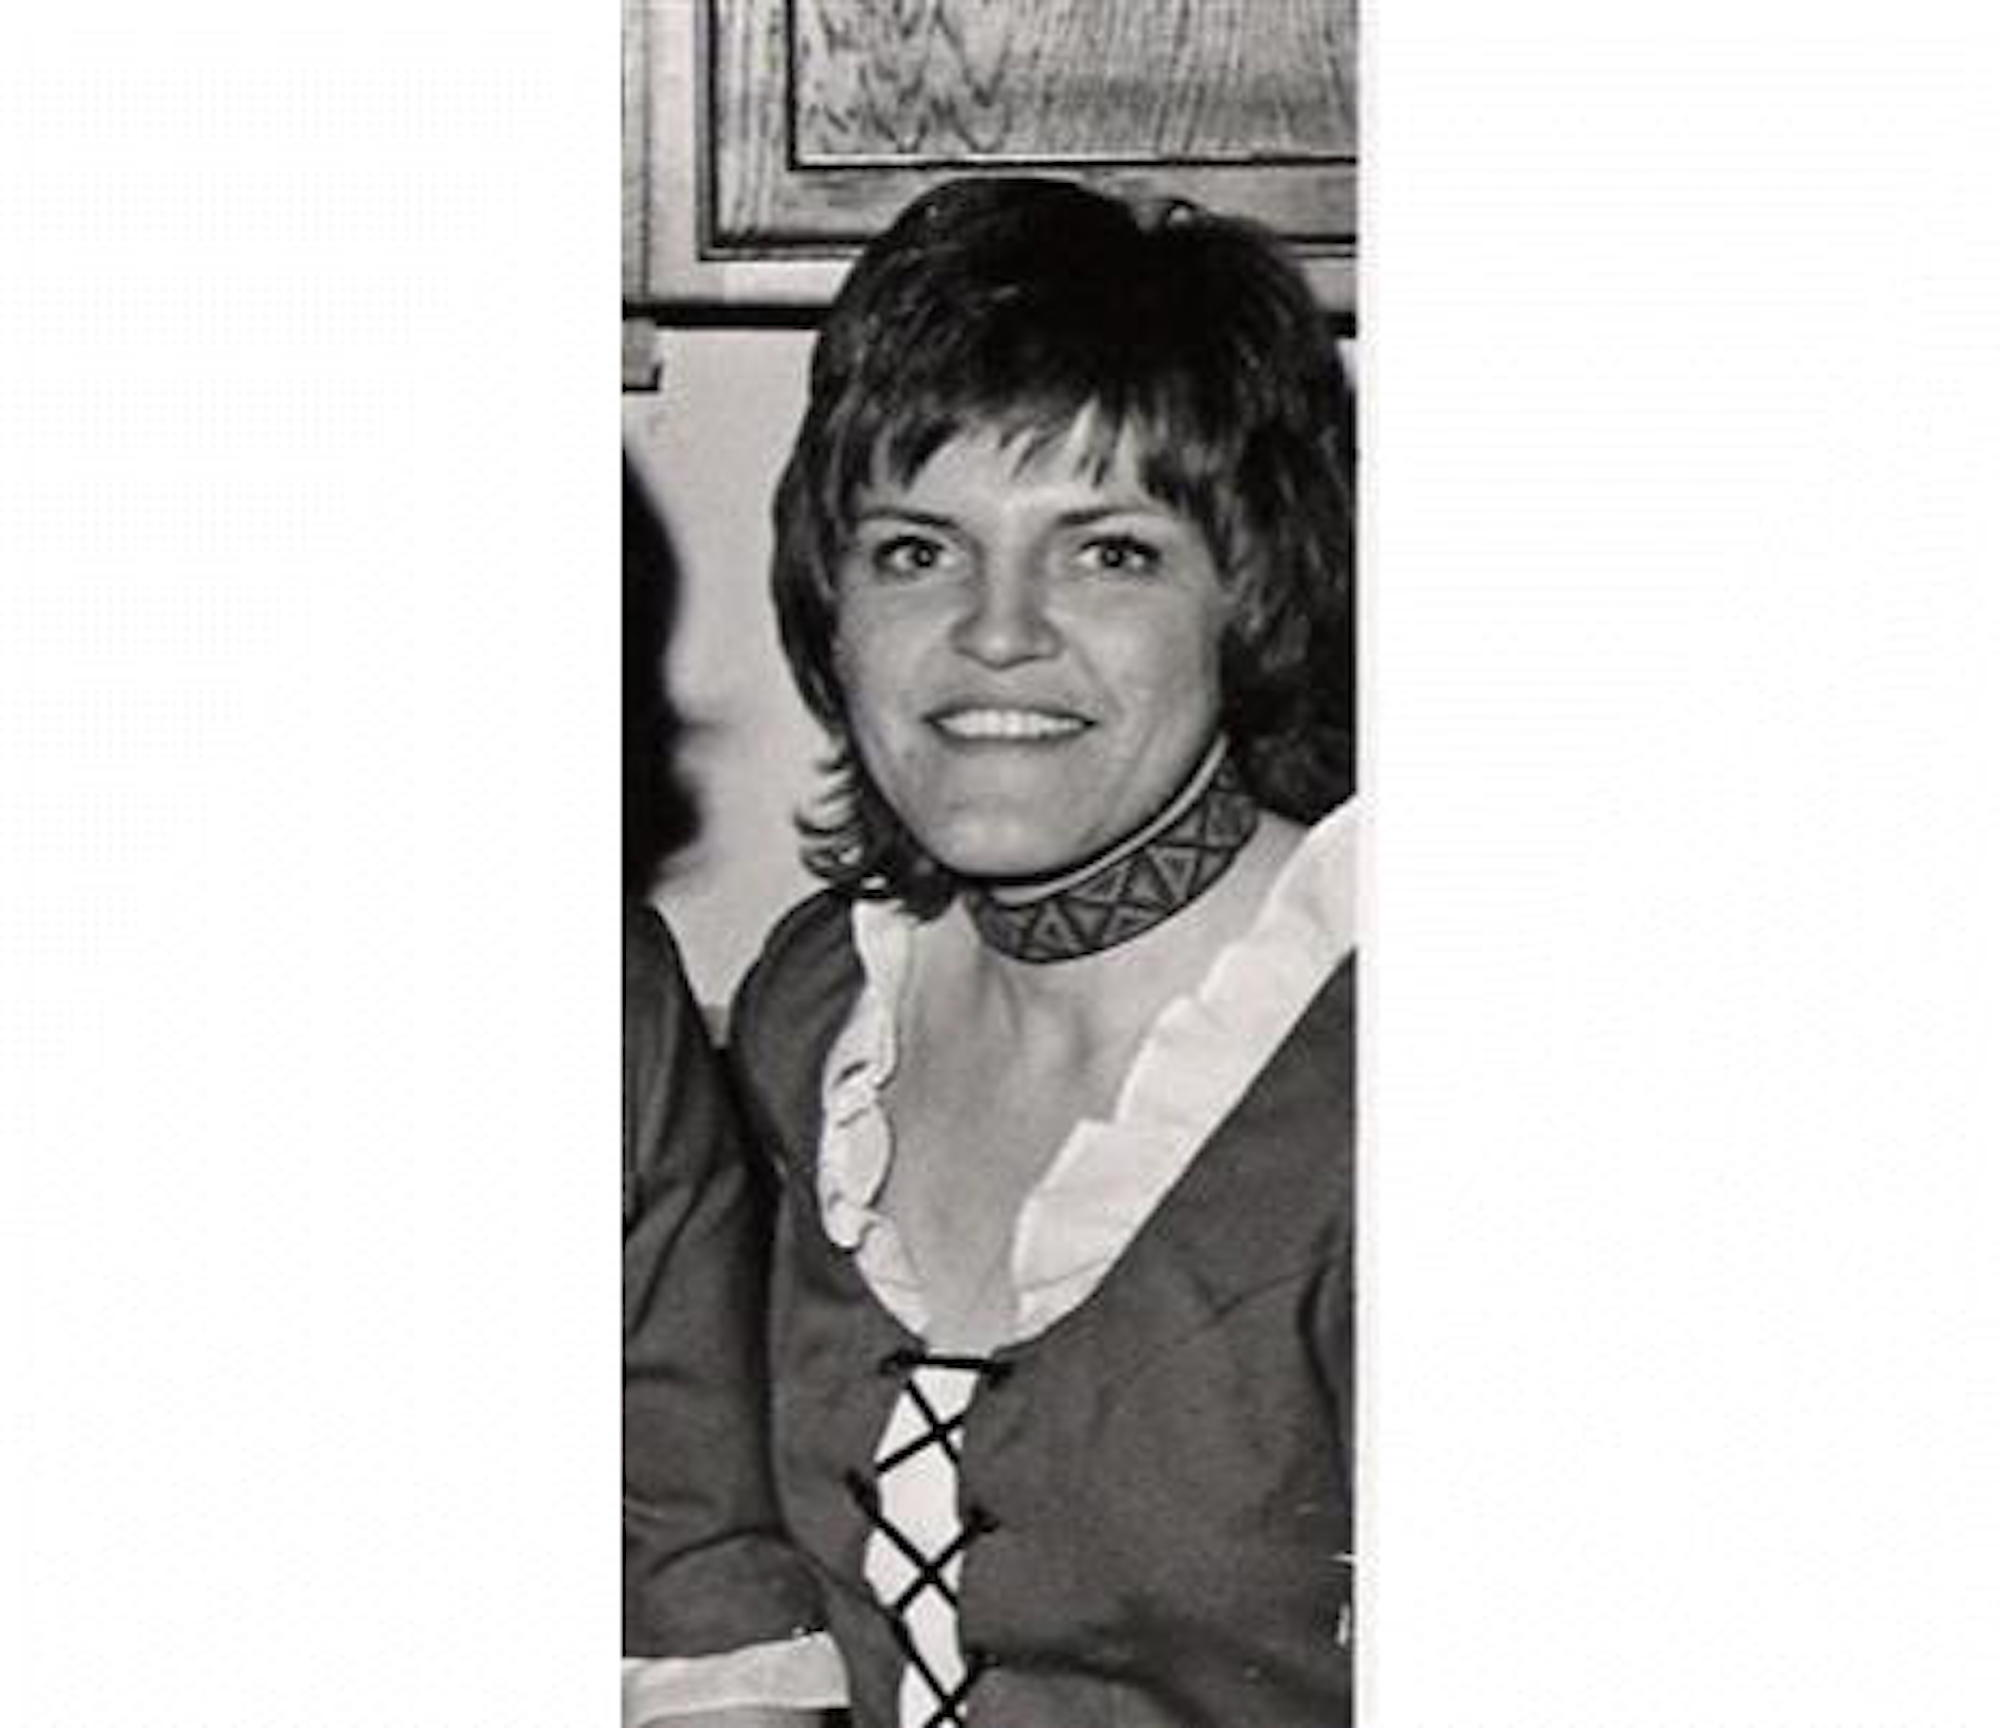 Obituary: Esther Rose Kemp, Aug. 25, 1944 – Feb. 18, 2019